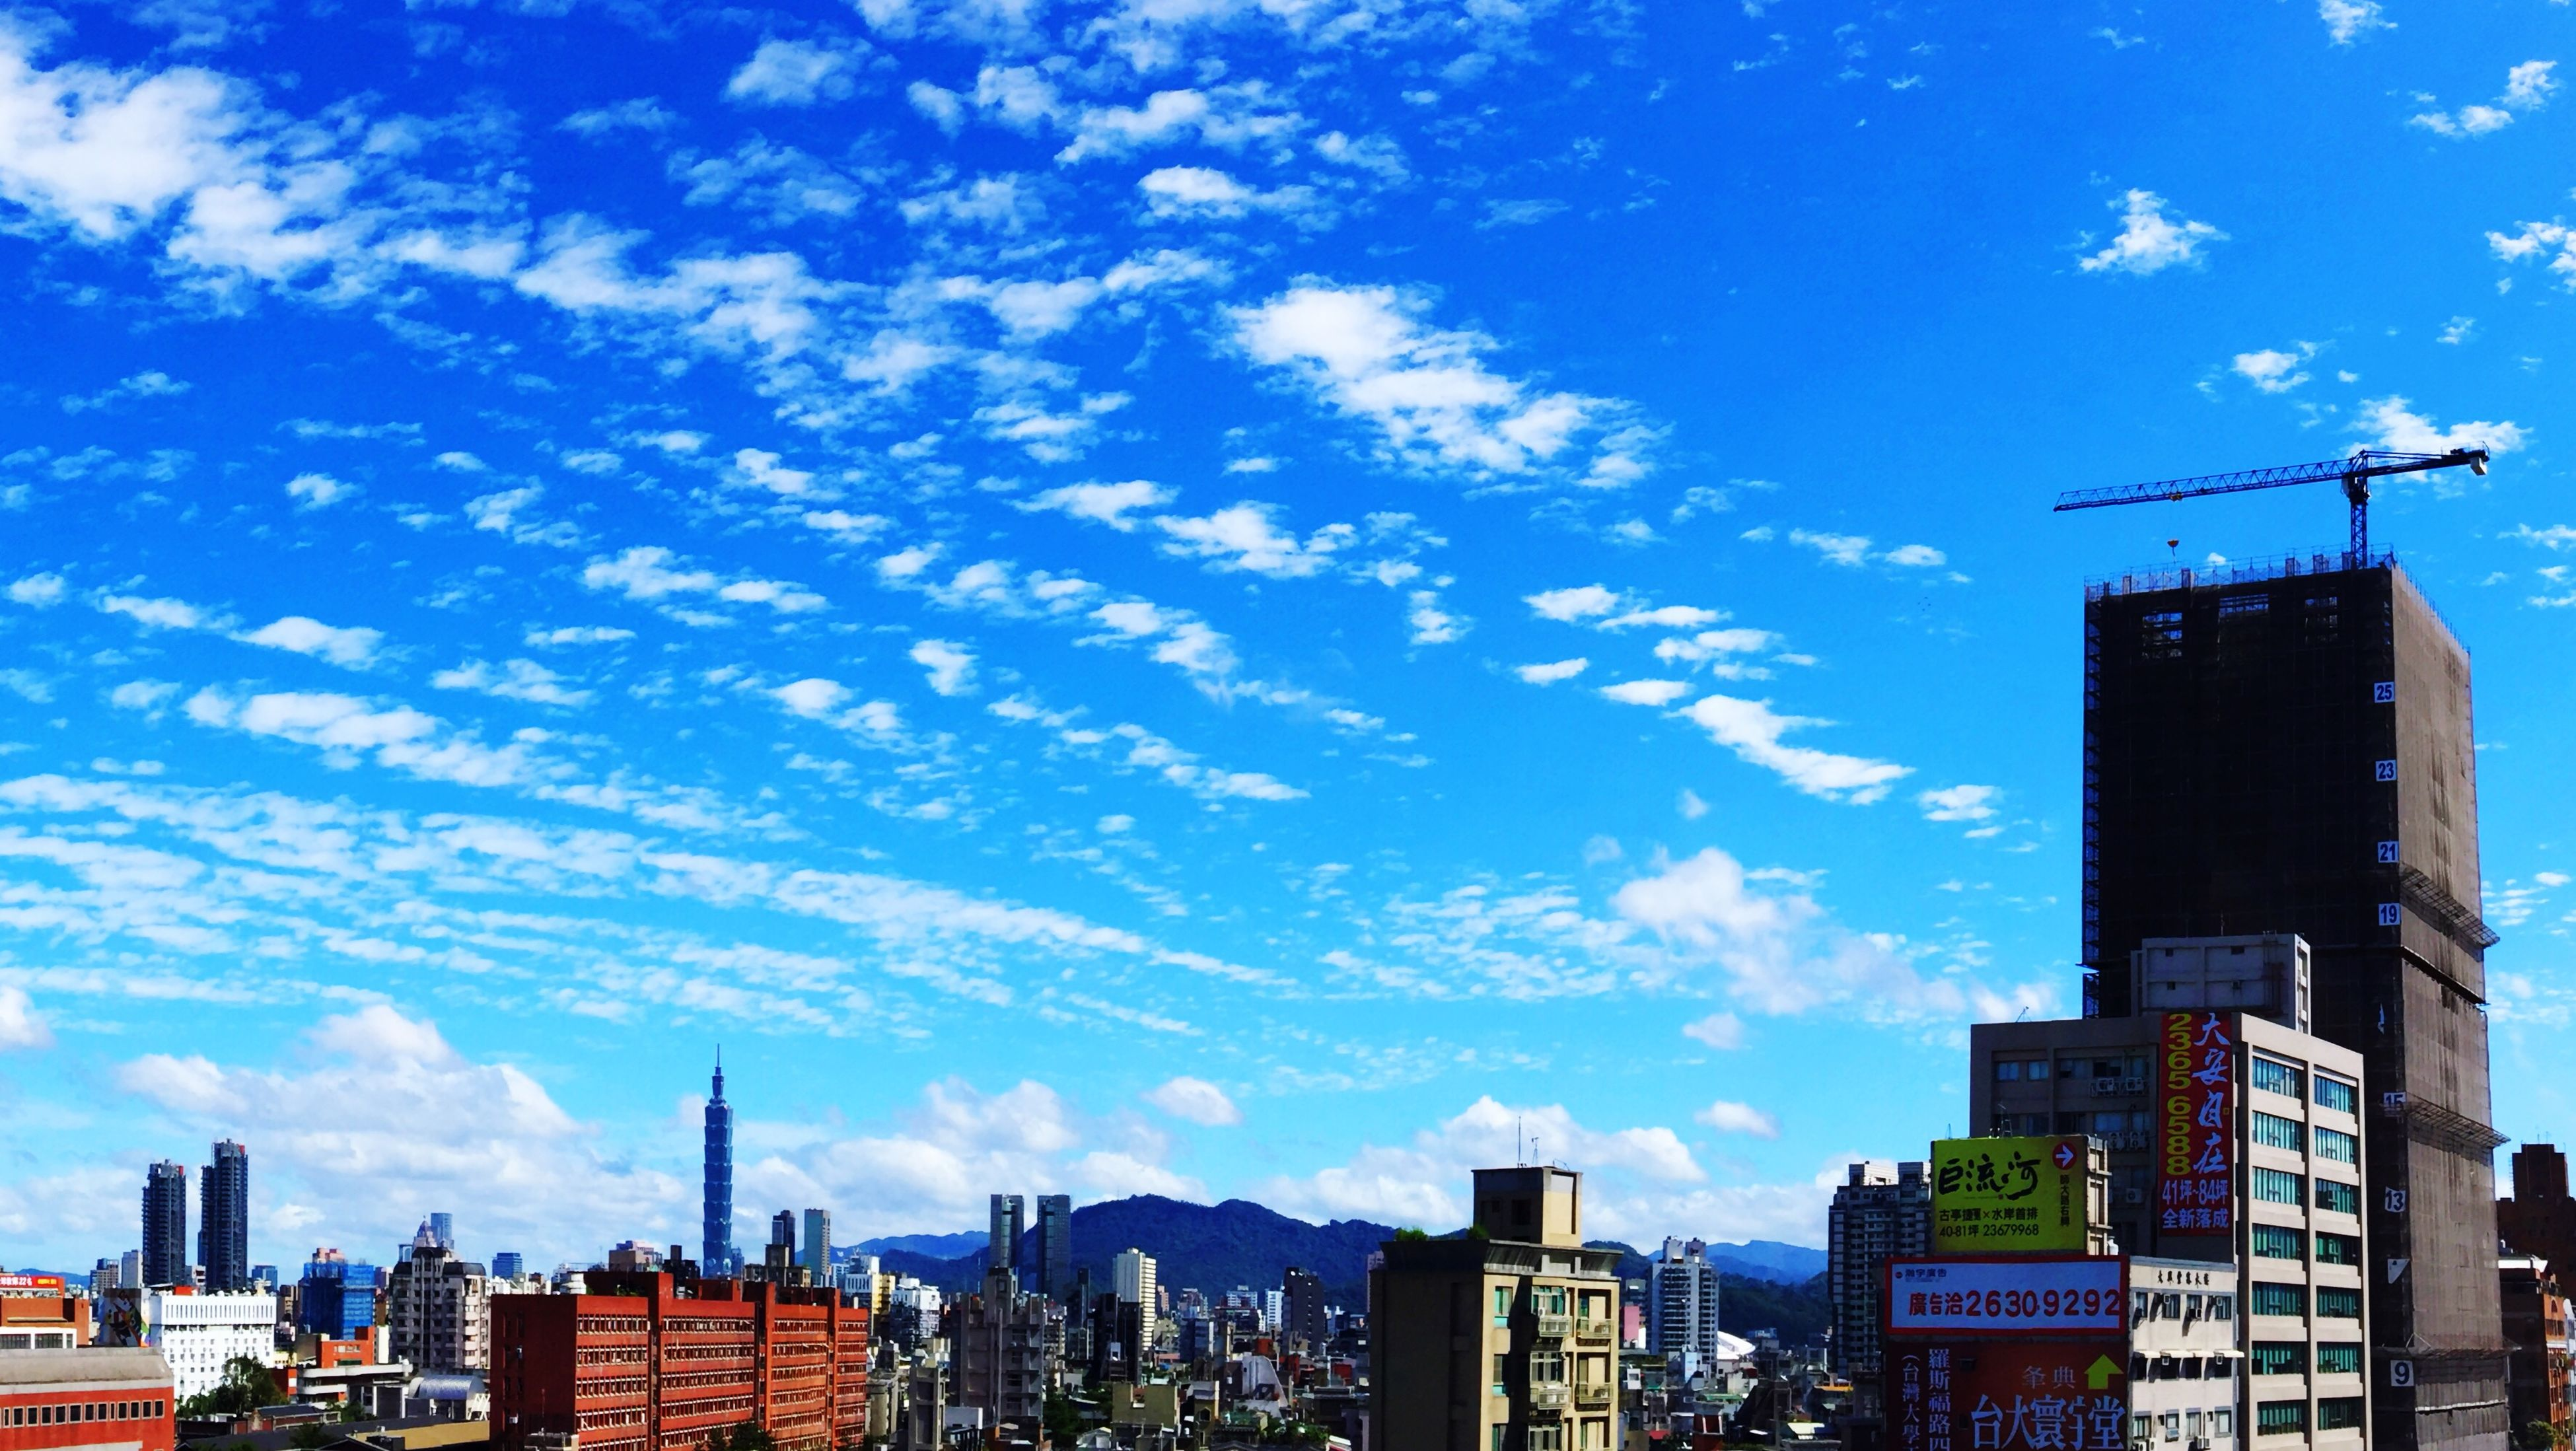 building exterior, architecture, built structure, sky, city, cloud - sky, blue, low angle view, residential building, building, cloud, cityscape, tower, residential structure, skyscraper, tall - high, residential district, city life, sunlight, day